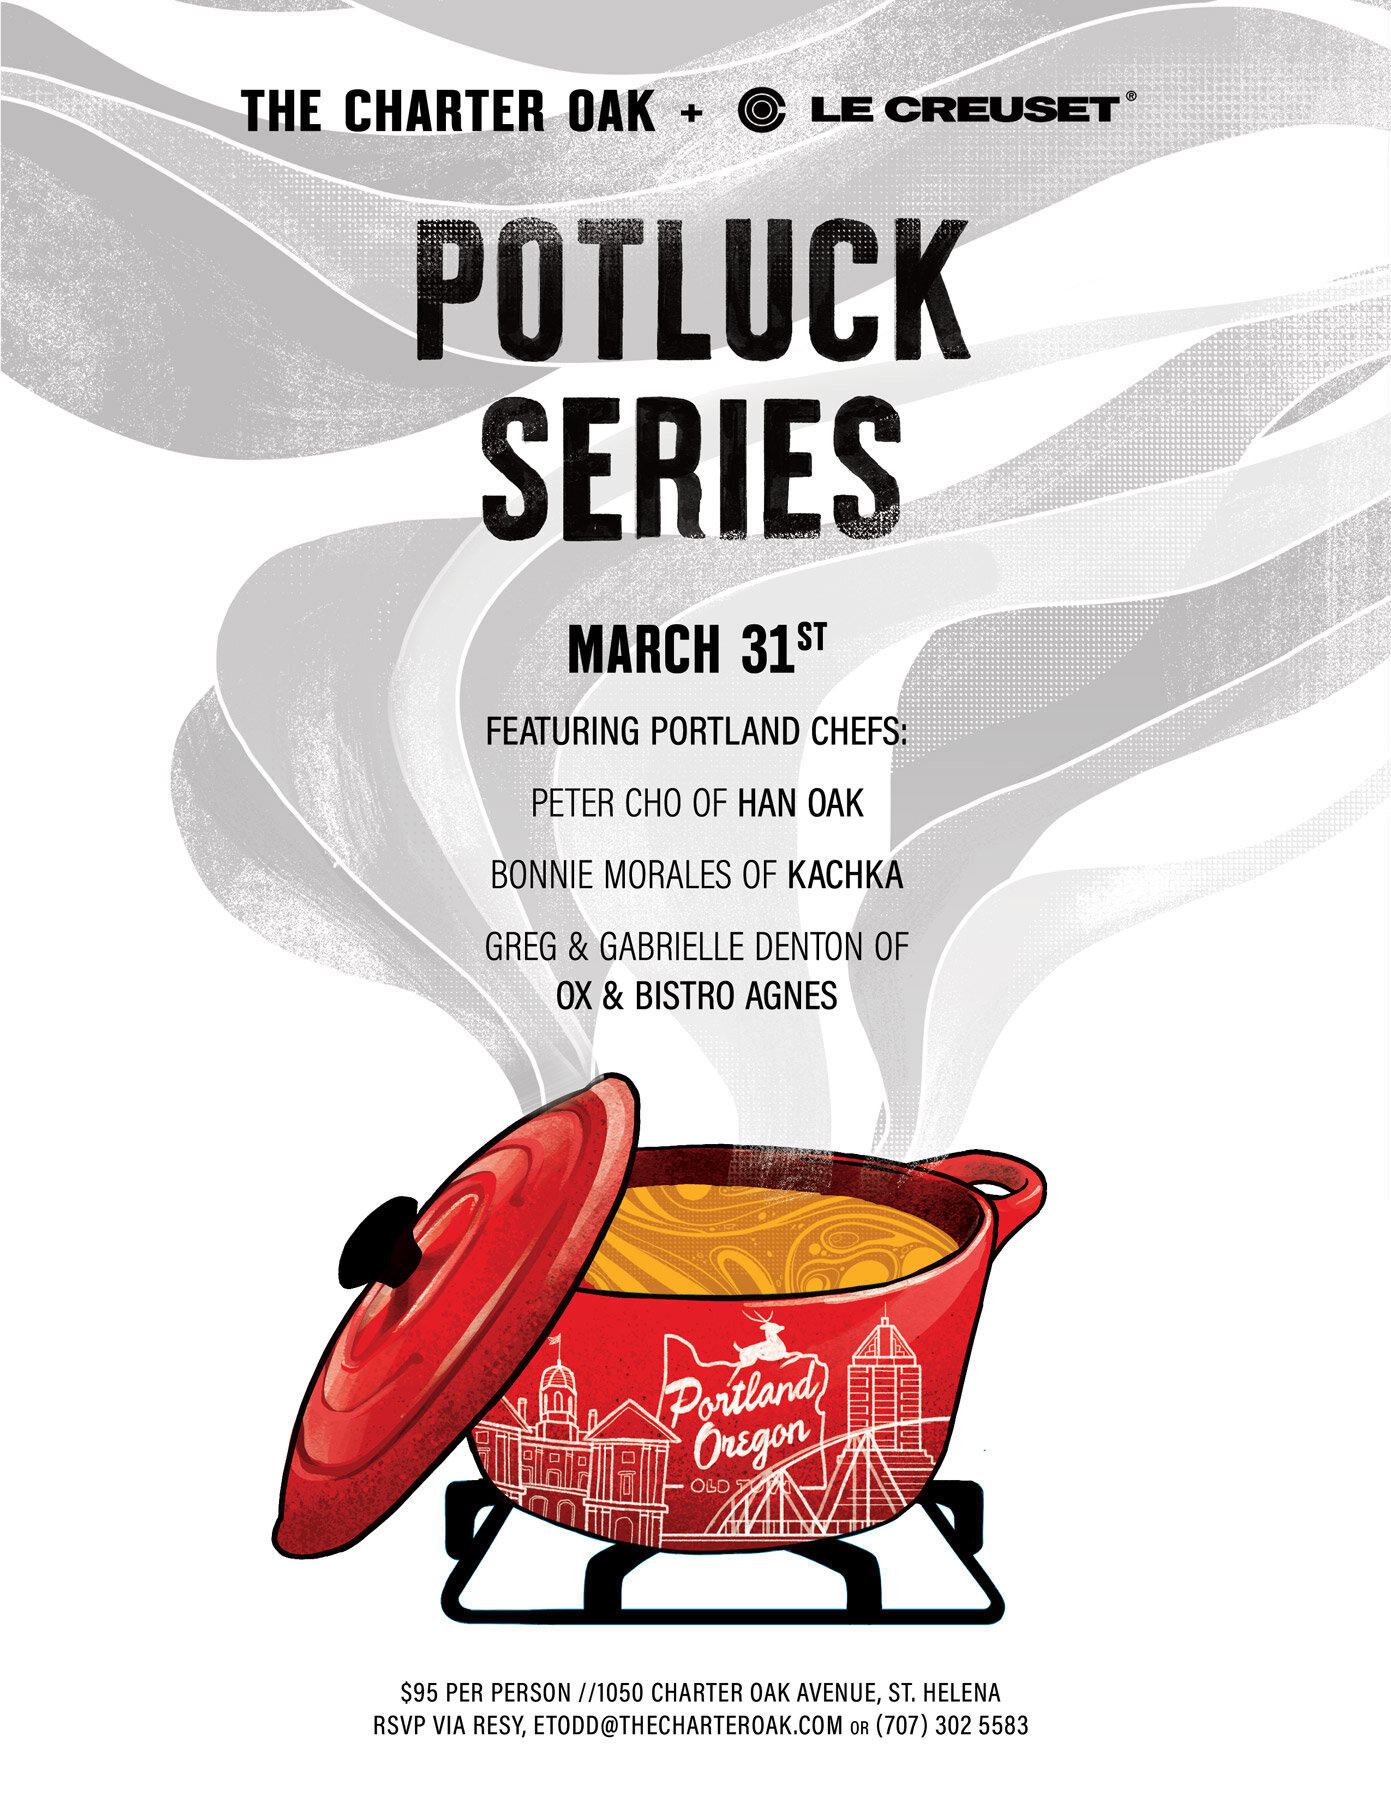 Charter Oak Potluck Series with Le Creuset